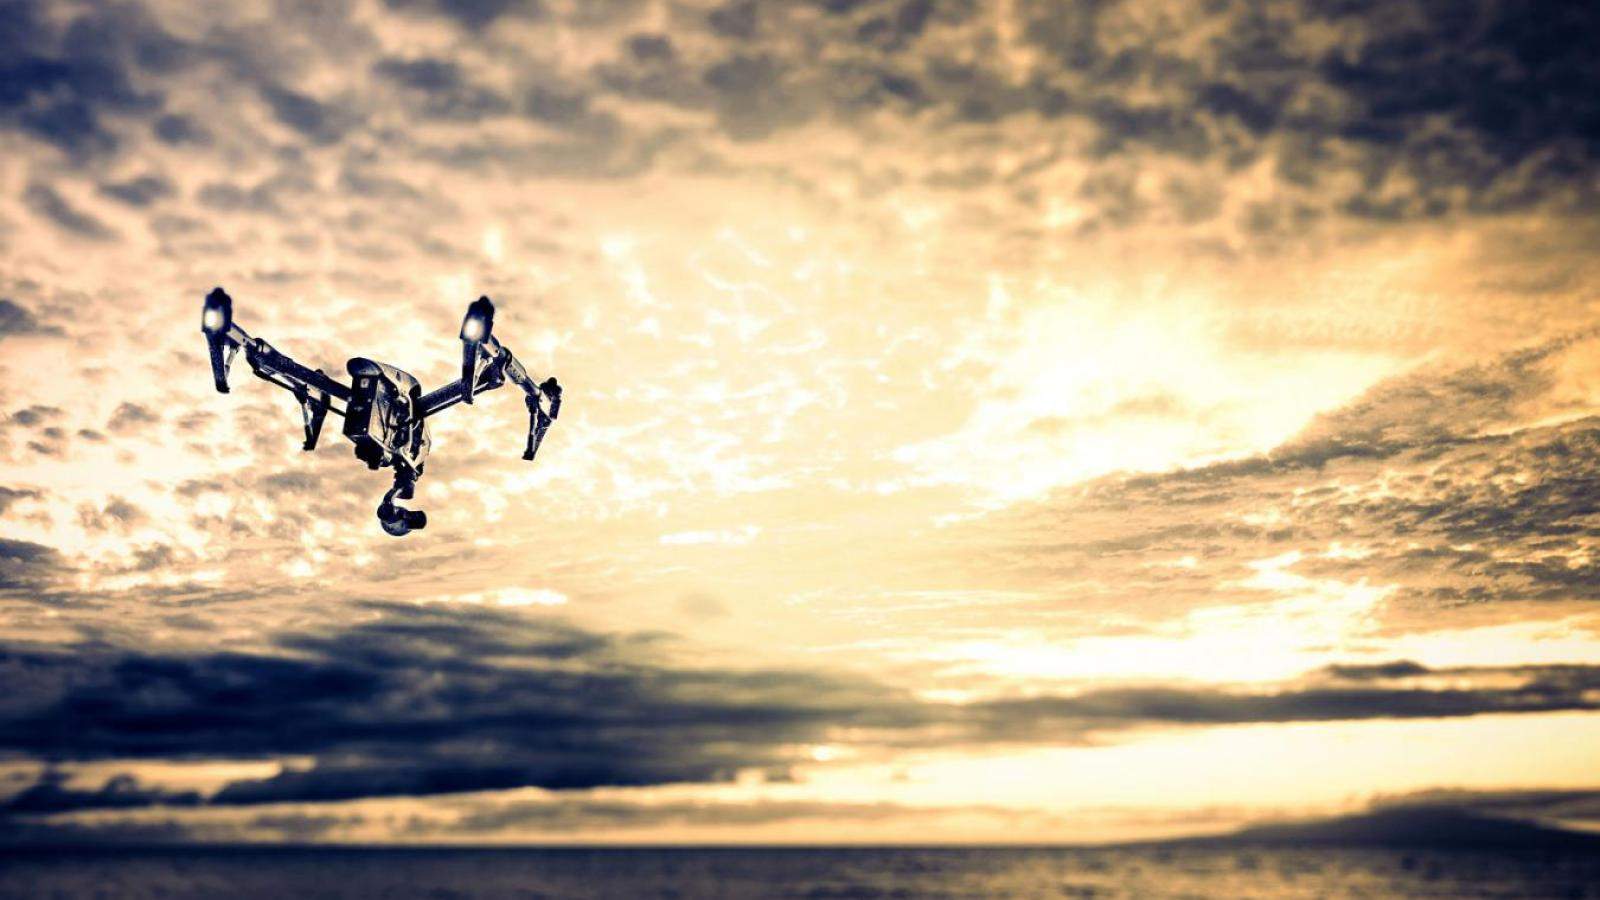 Flying drone in the sky.